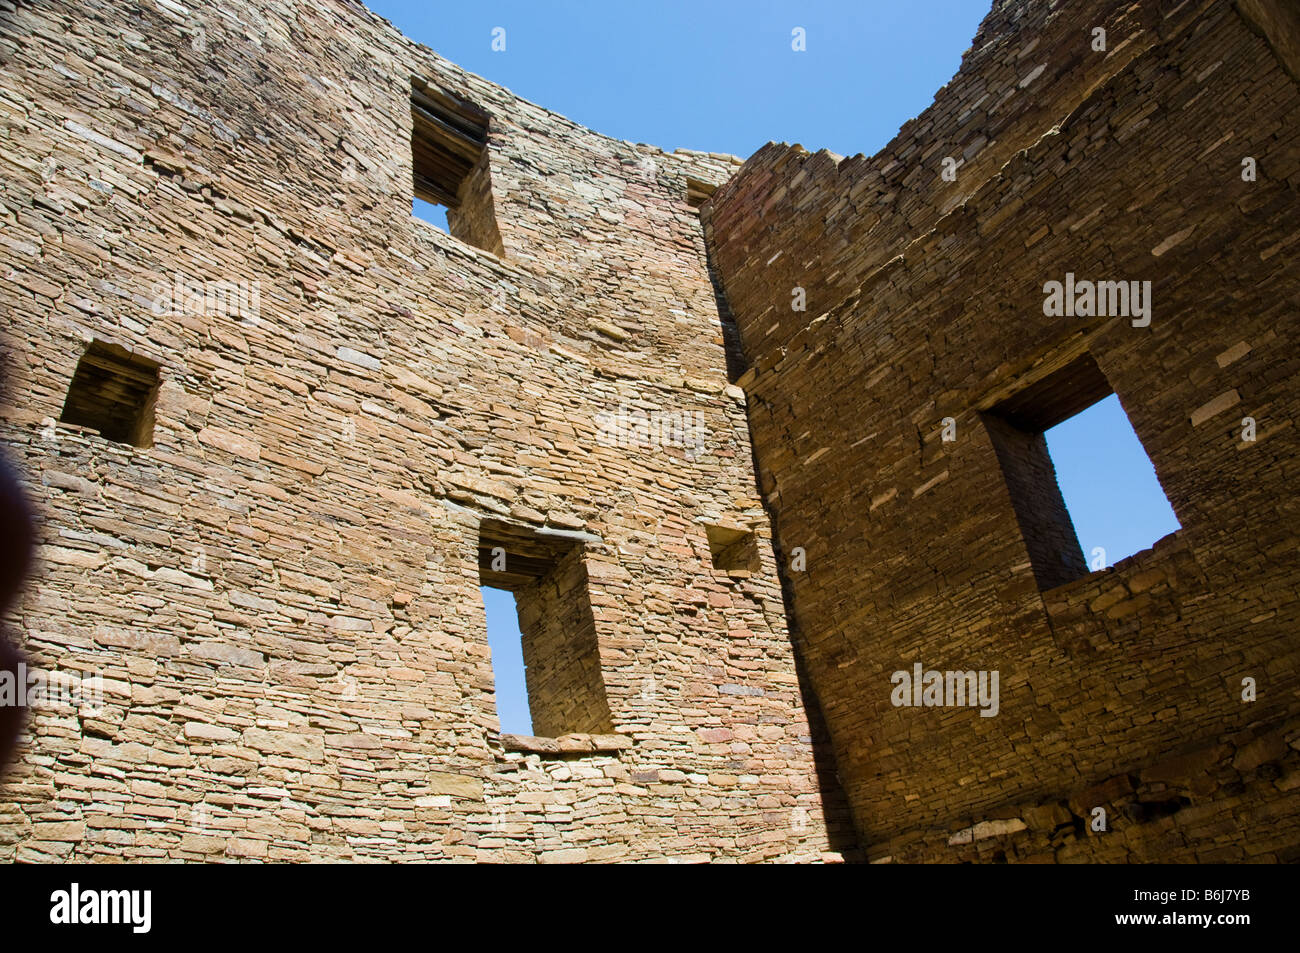 Rock dwellings at Chaco Culture National Historical Park New Mexico - Stock Image